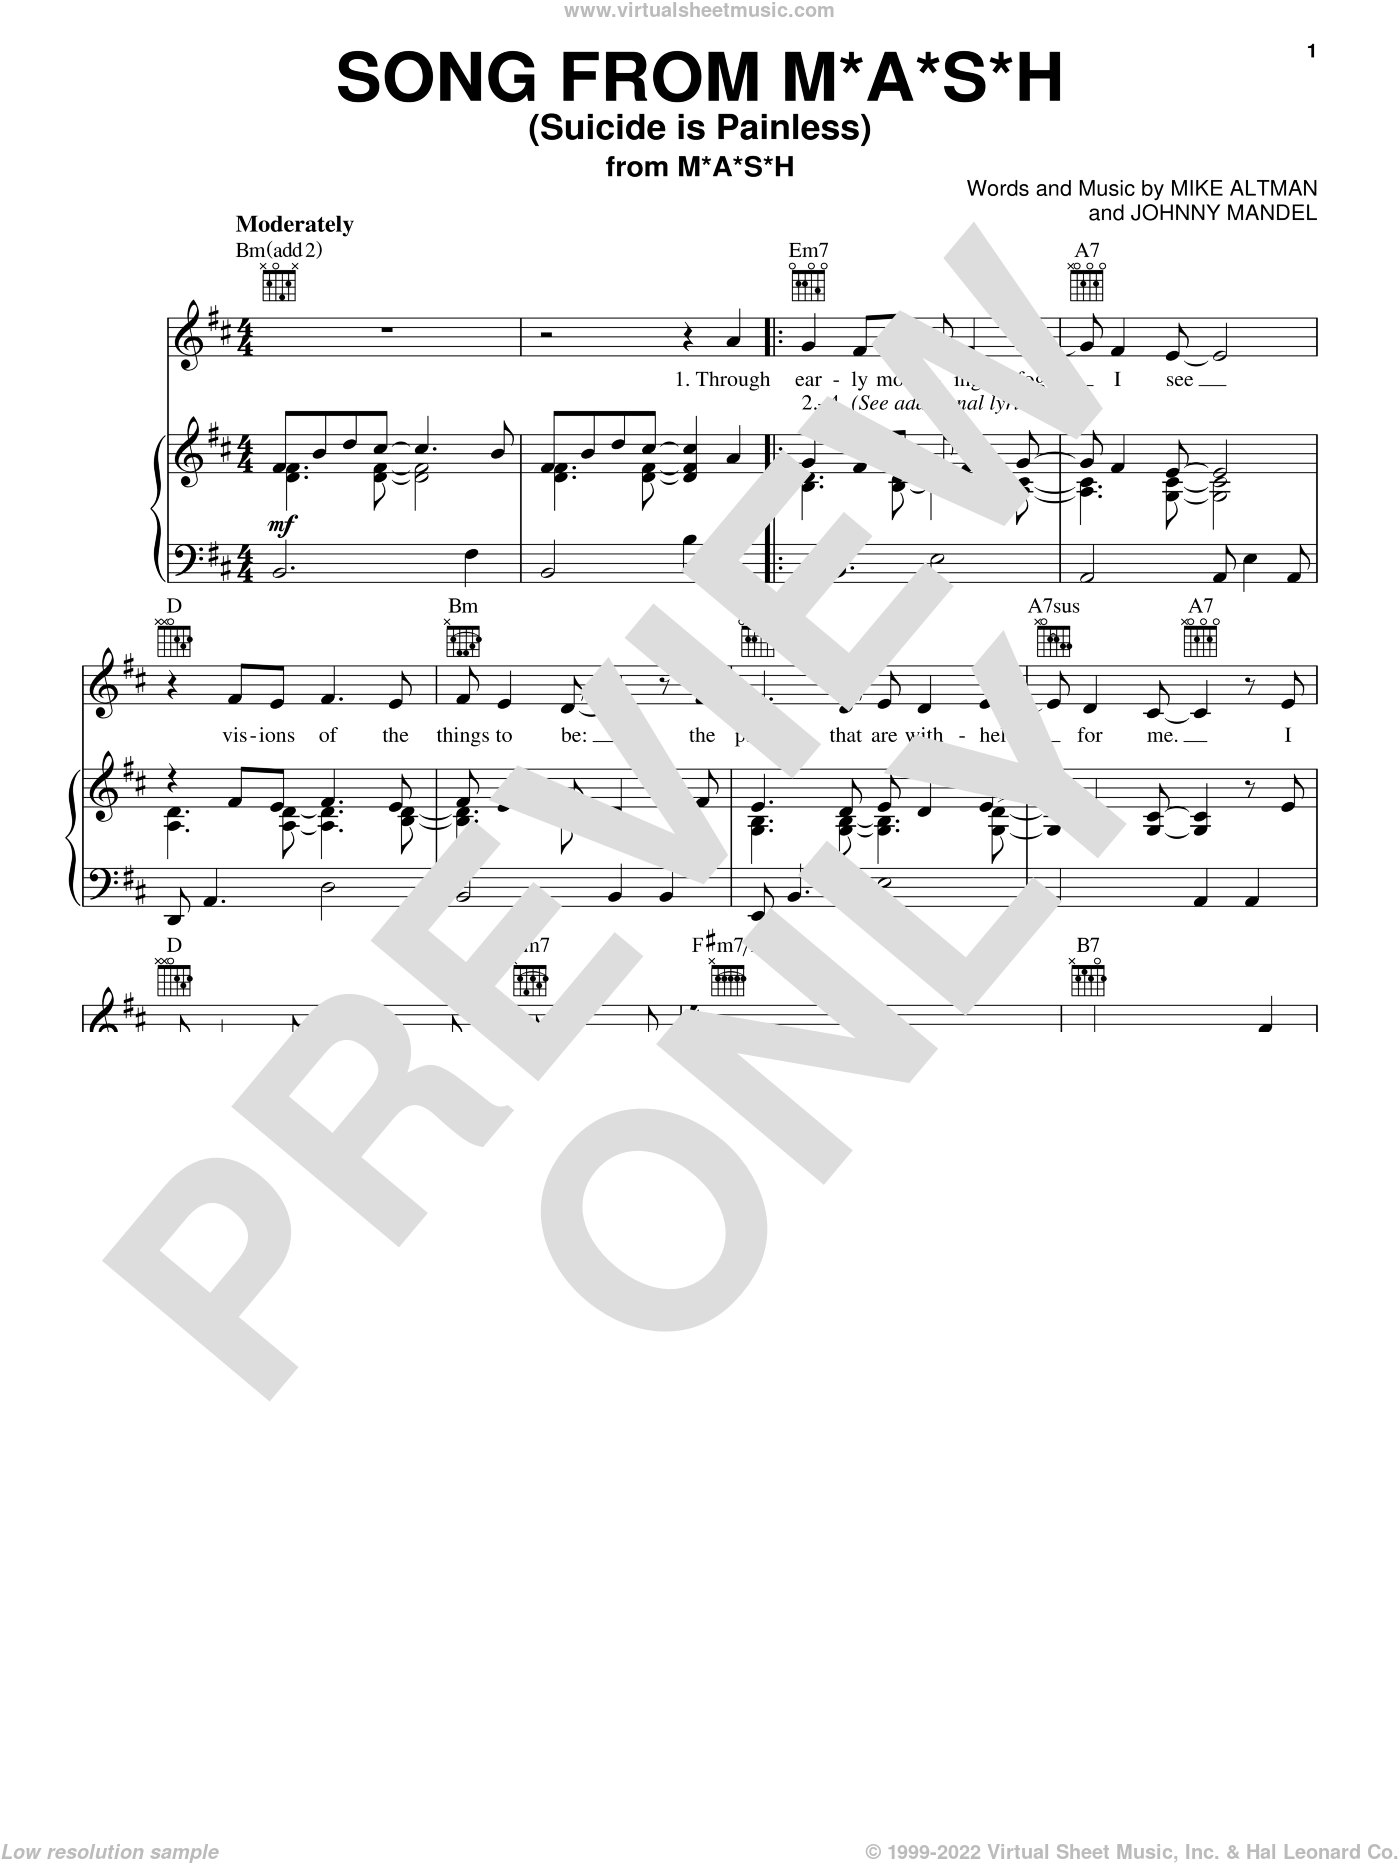 Song From M*A*S*H (Suicide Is Painless) sheet music for voice, piano or guitar by Johnny Mandel and Mike Altman, intermediate skill level